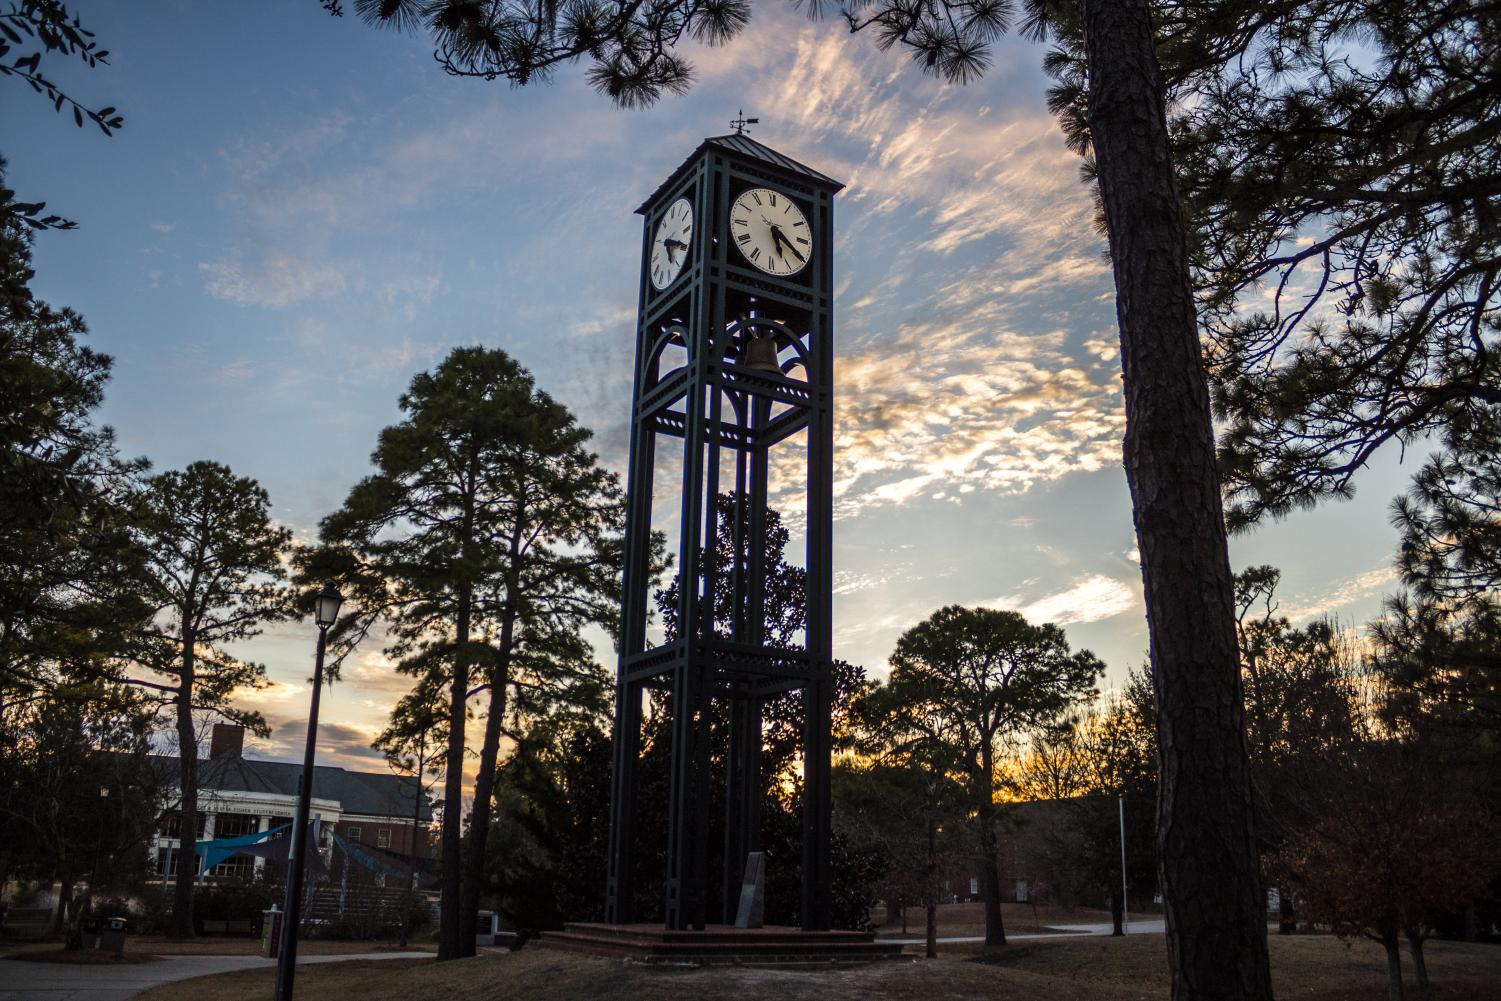 UNCW's clock tower in front of Randall Library.